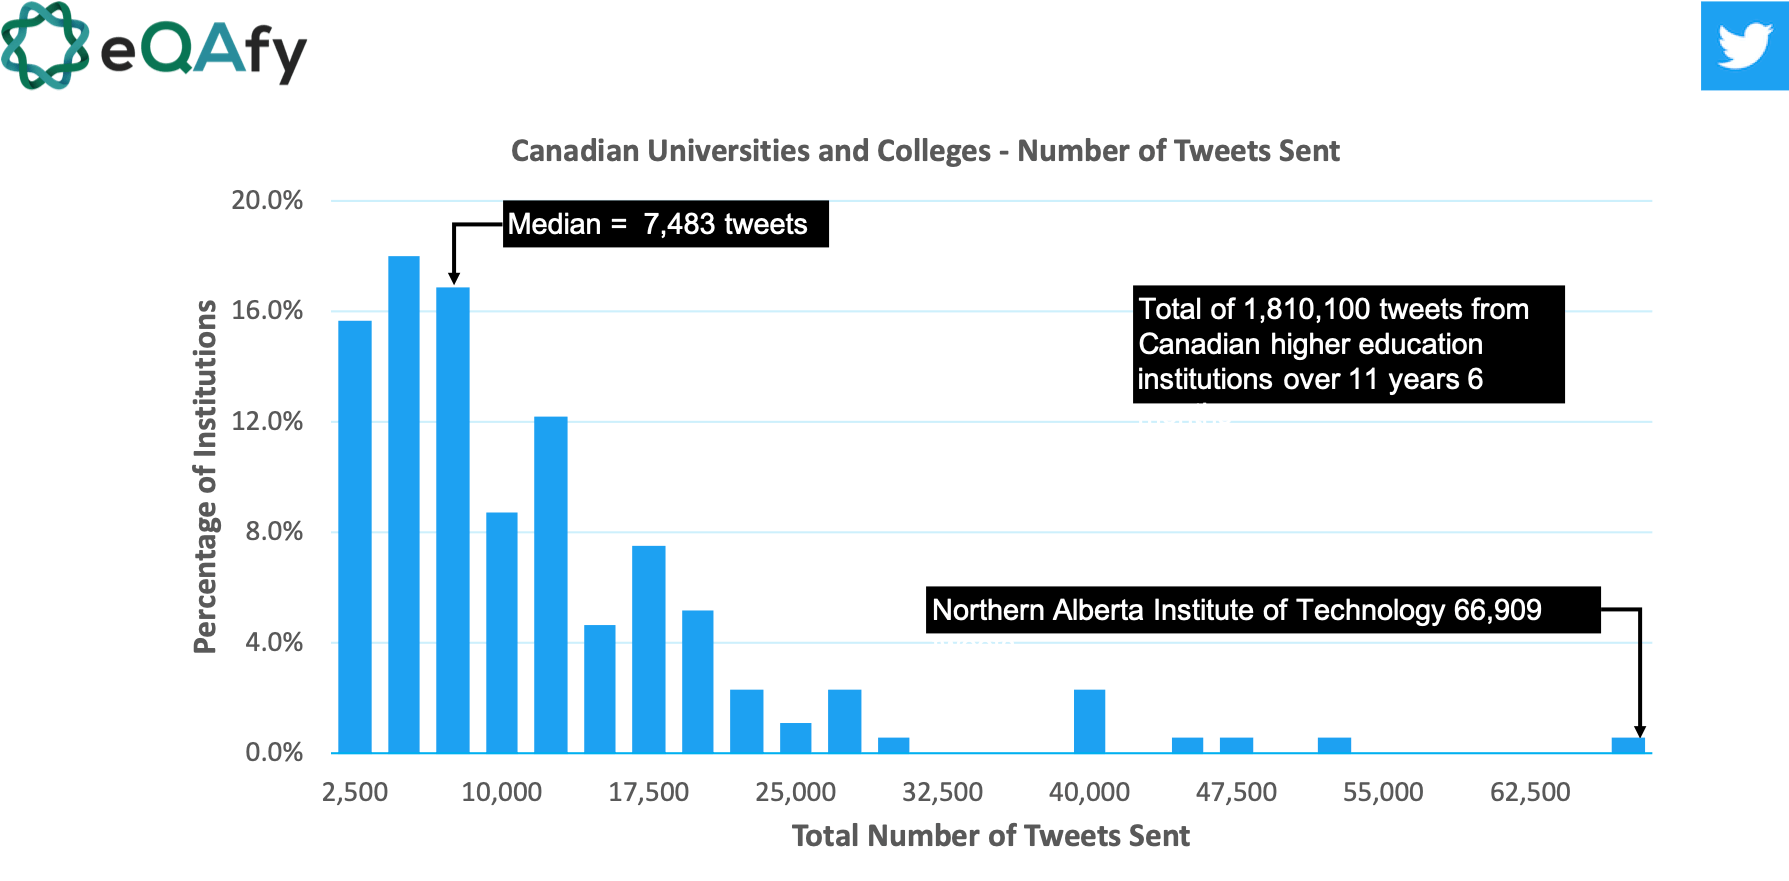 Number of Tweets sent for higher education/post-secondary institutions in Canada